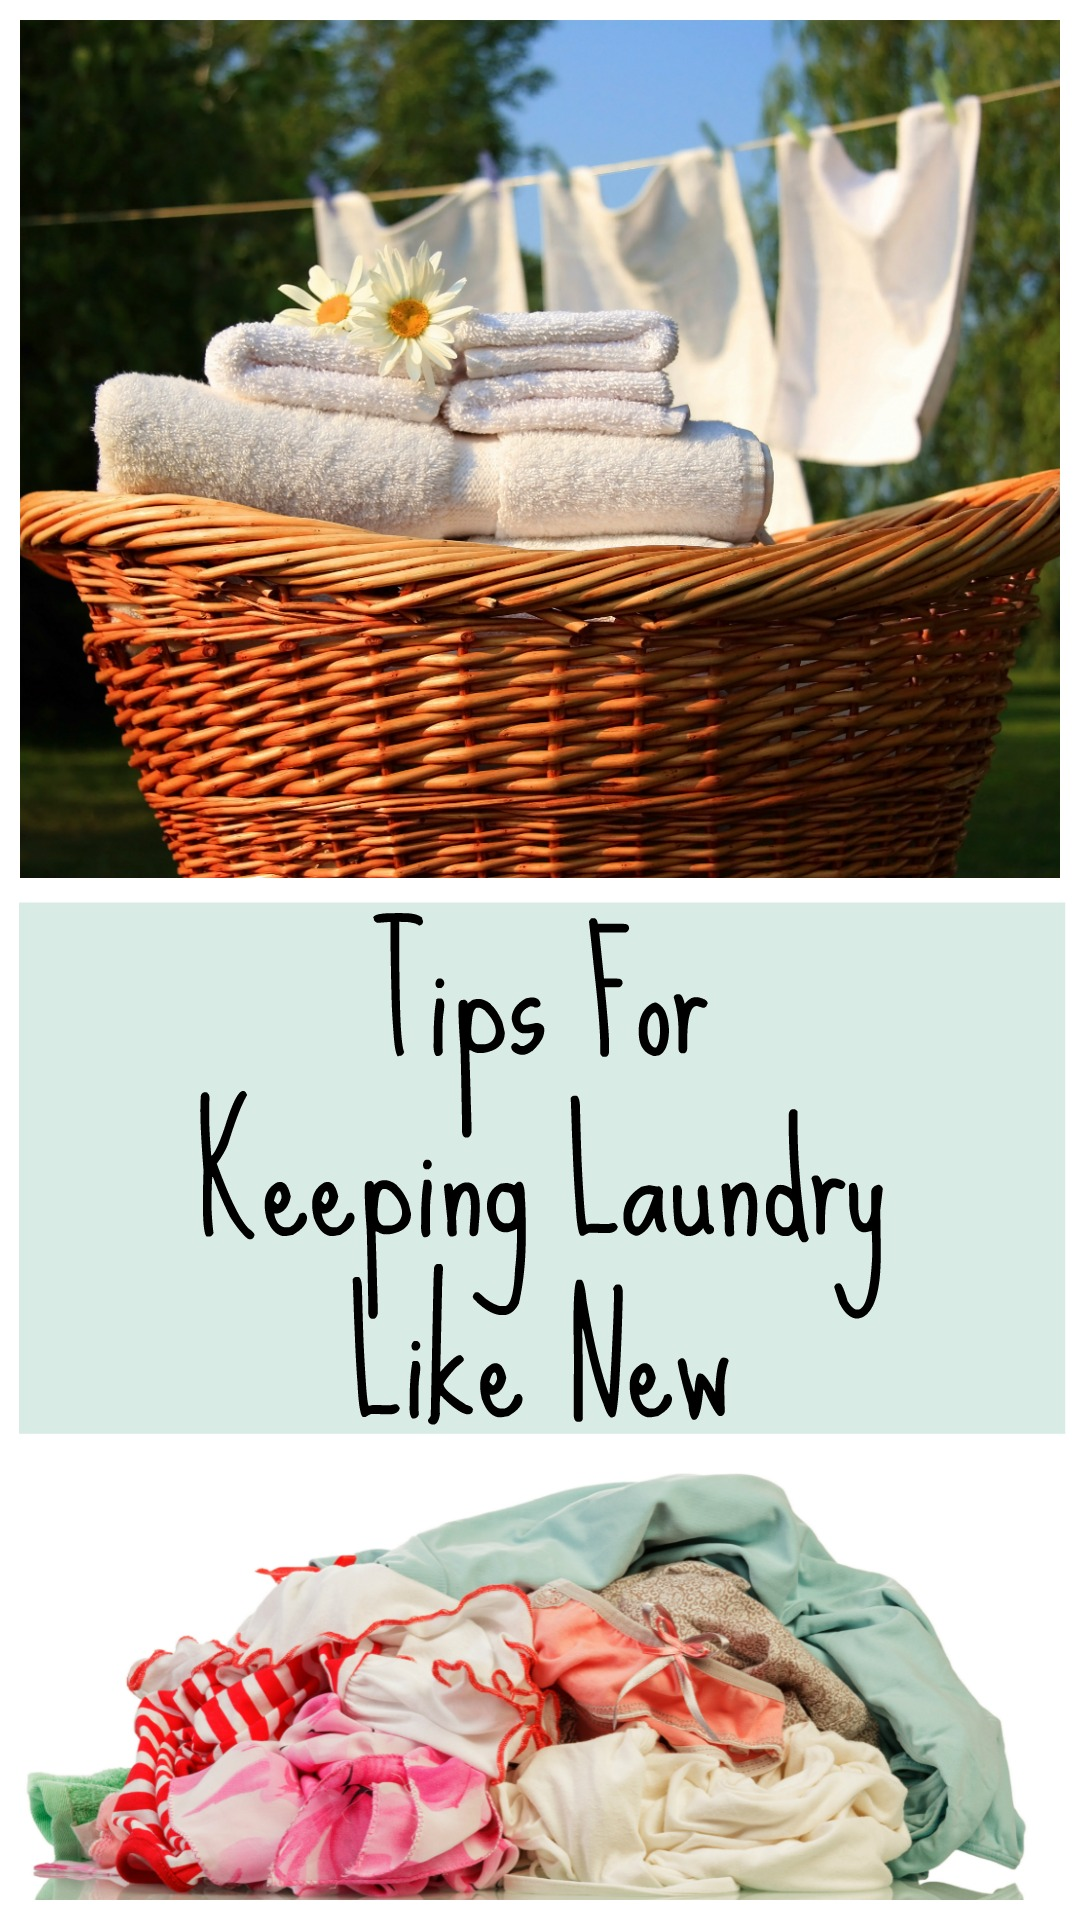 Having three kids, a husband and a dog, I am a self proclaimed expert at laundry, and today I am happy to share my tips for keeping laundry like new!